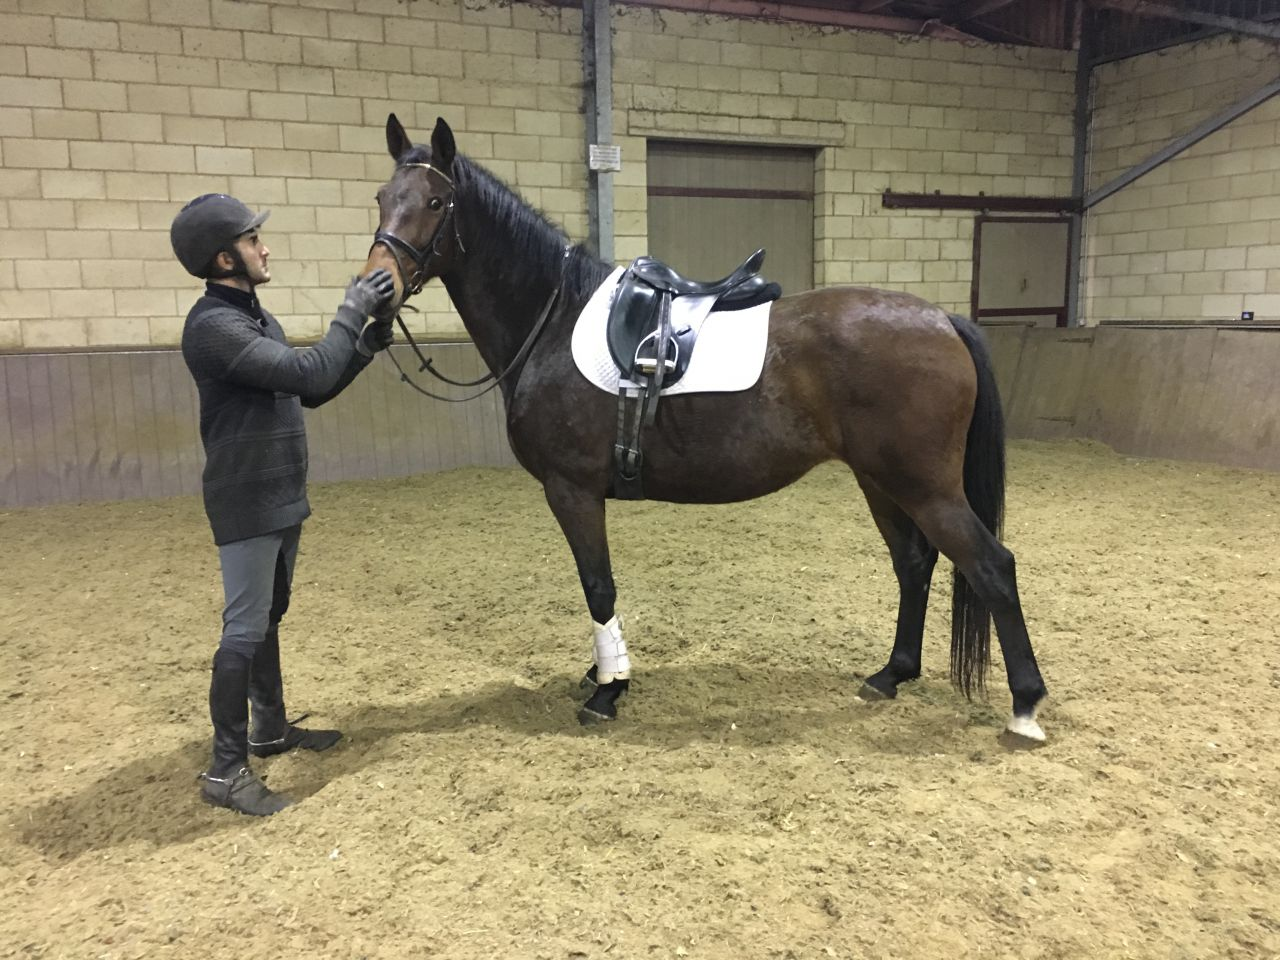 Zwembad Bosbad Emmeloord Openingstijden Horses For Sale Ponies For Sale Equirodi Uk